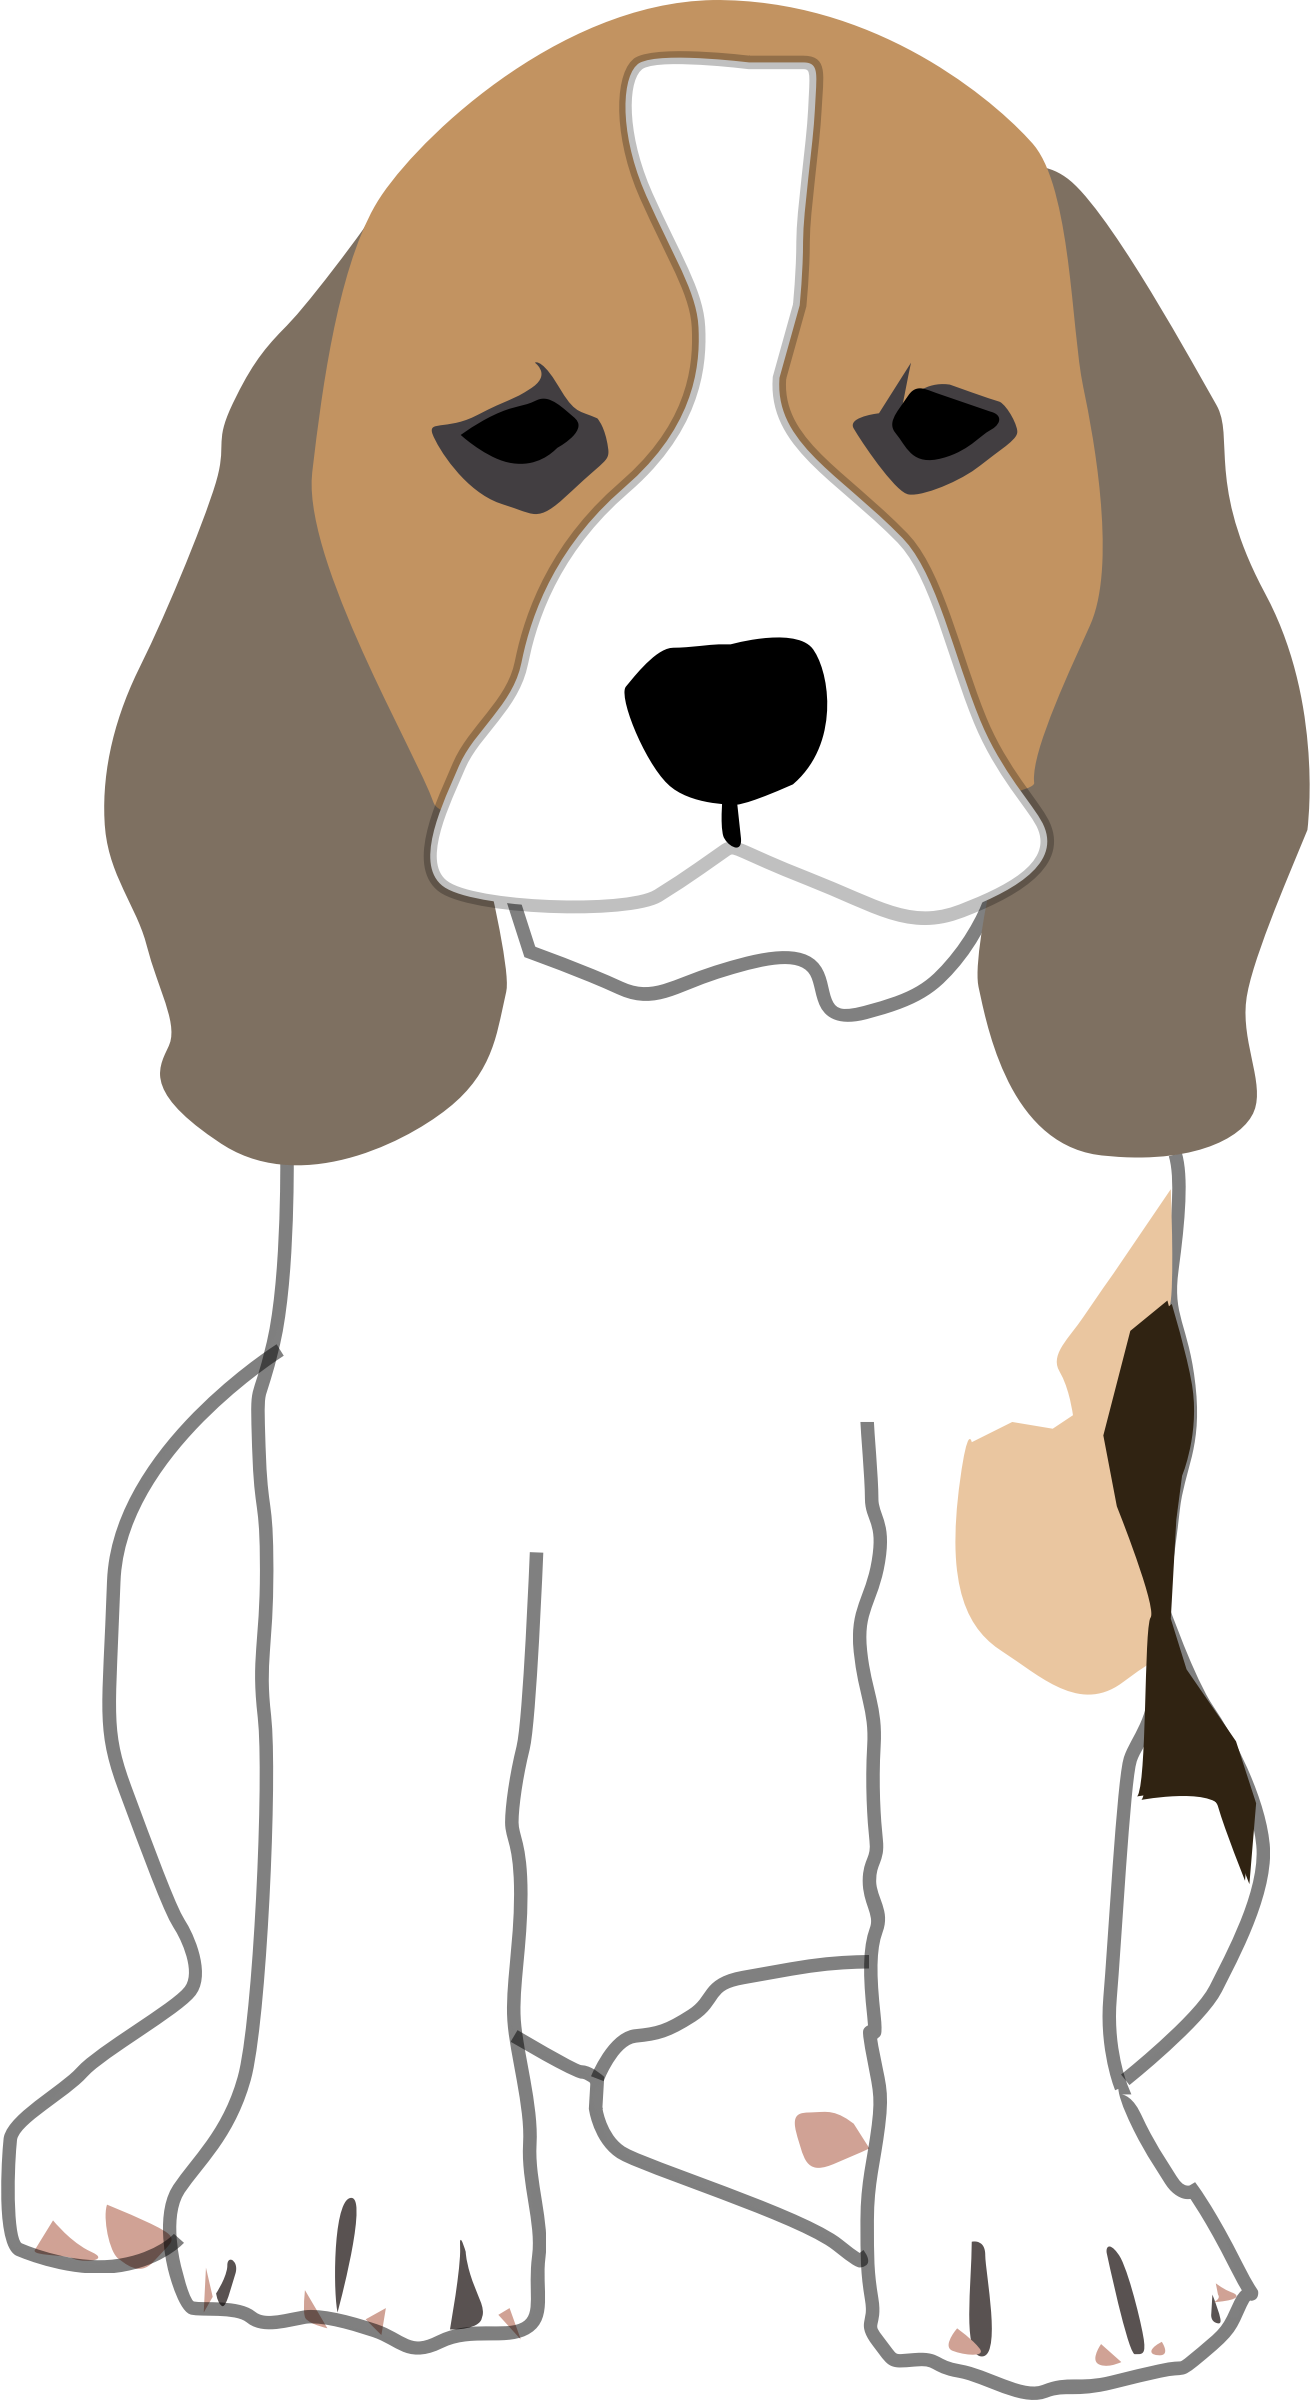 Beagle clipart dog owner. Puppy big image png